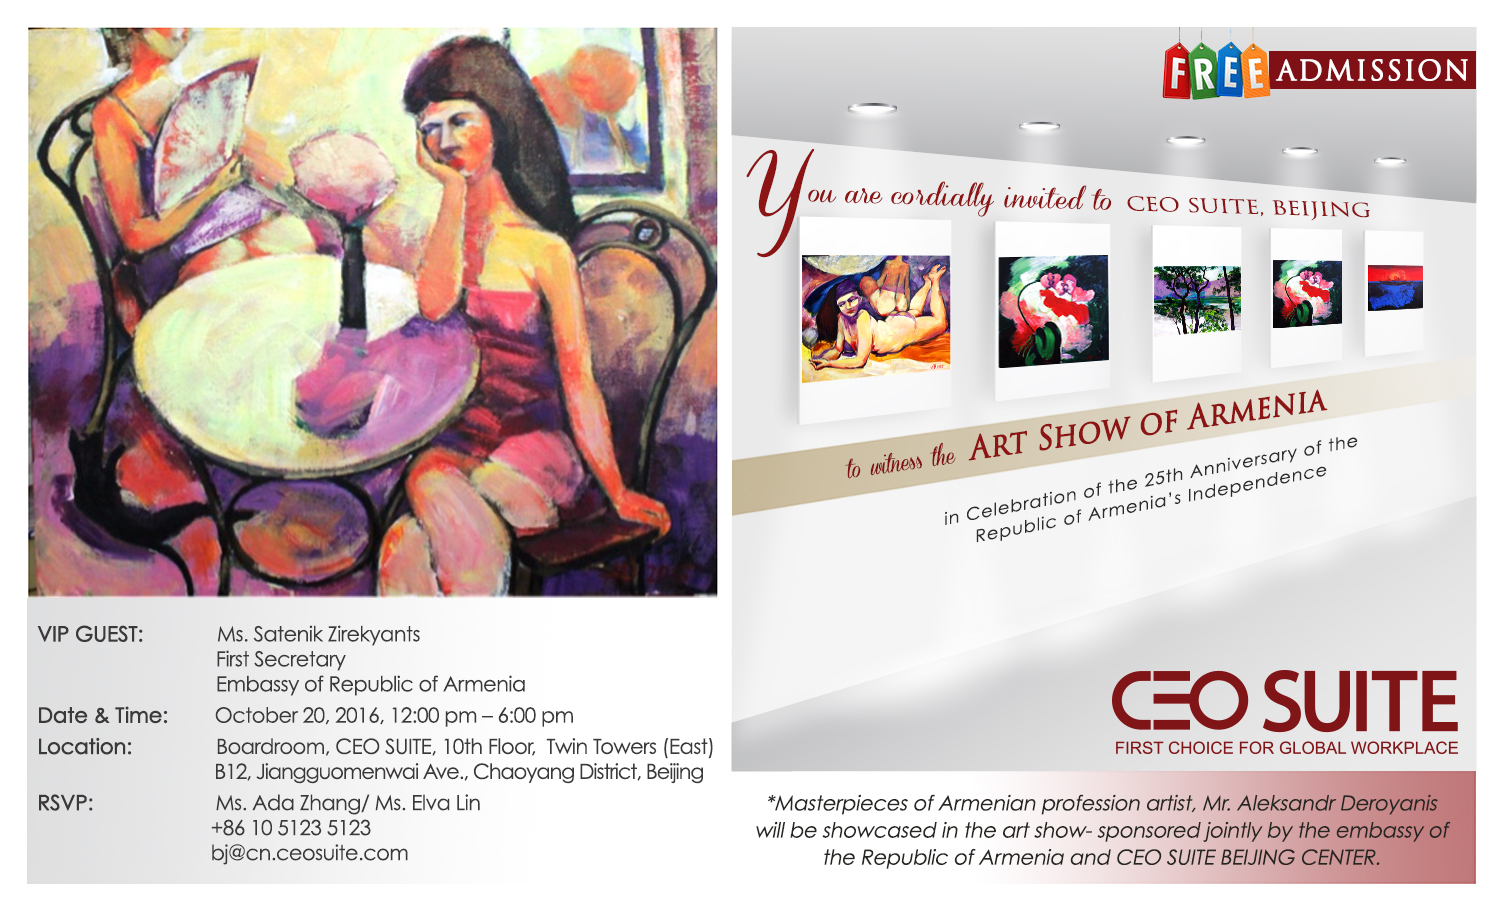 Art Show of Armenia